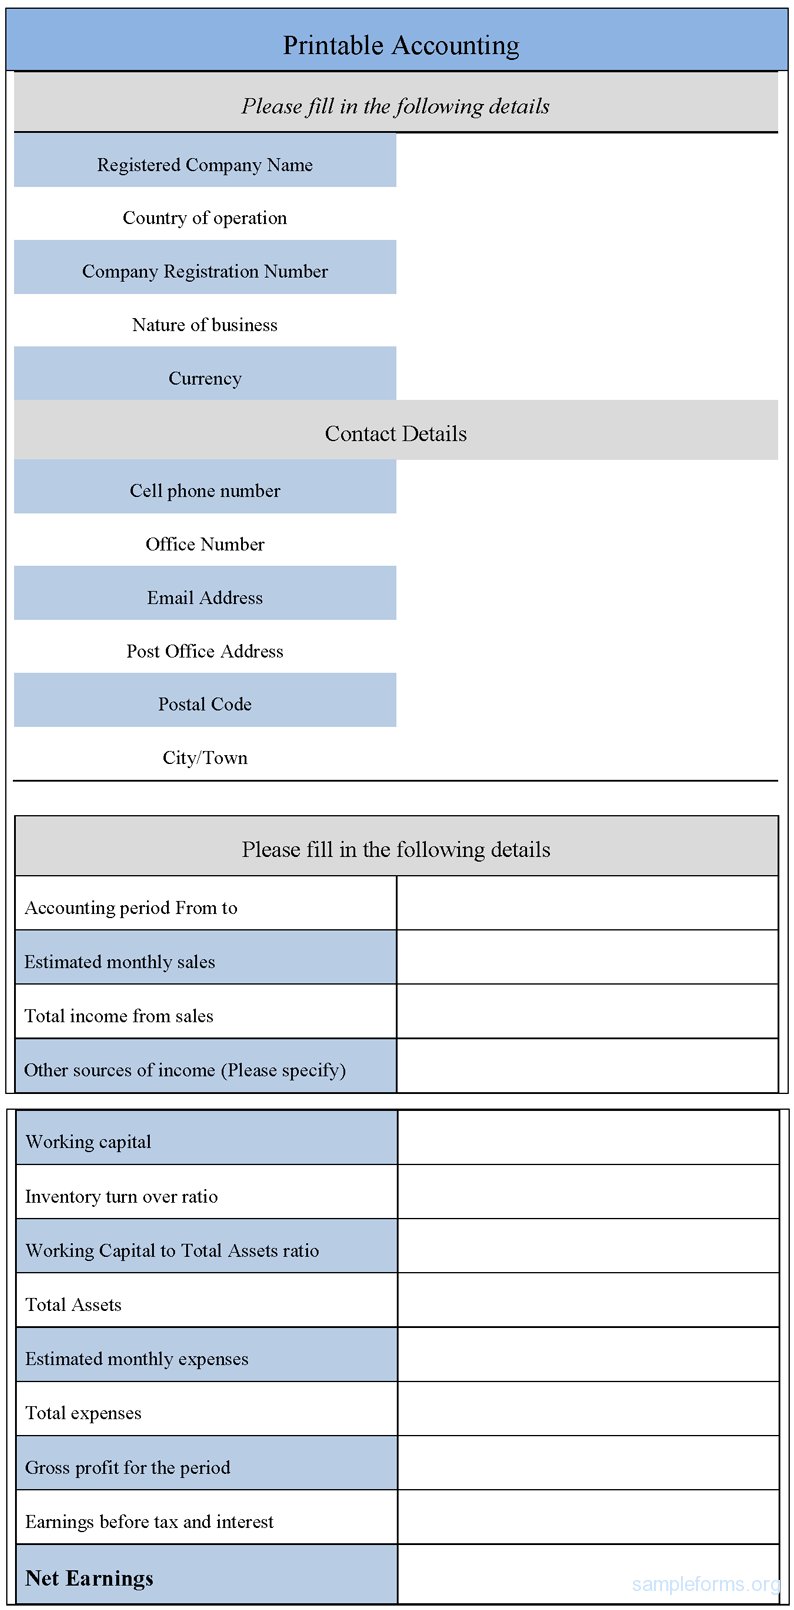 8 Images of Free Printable Accounting Forms